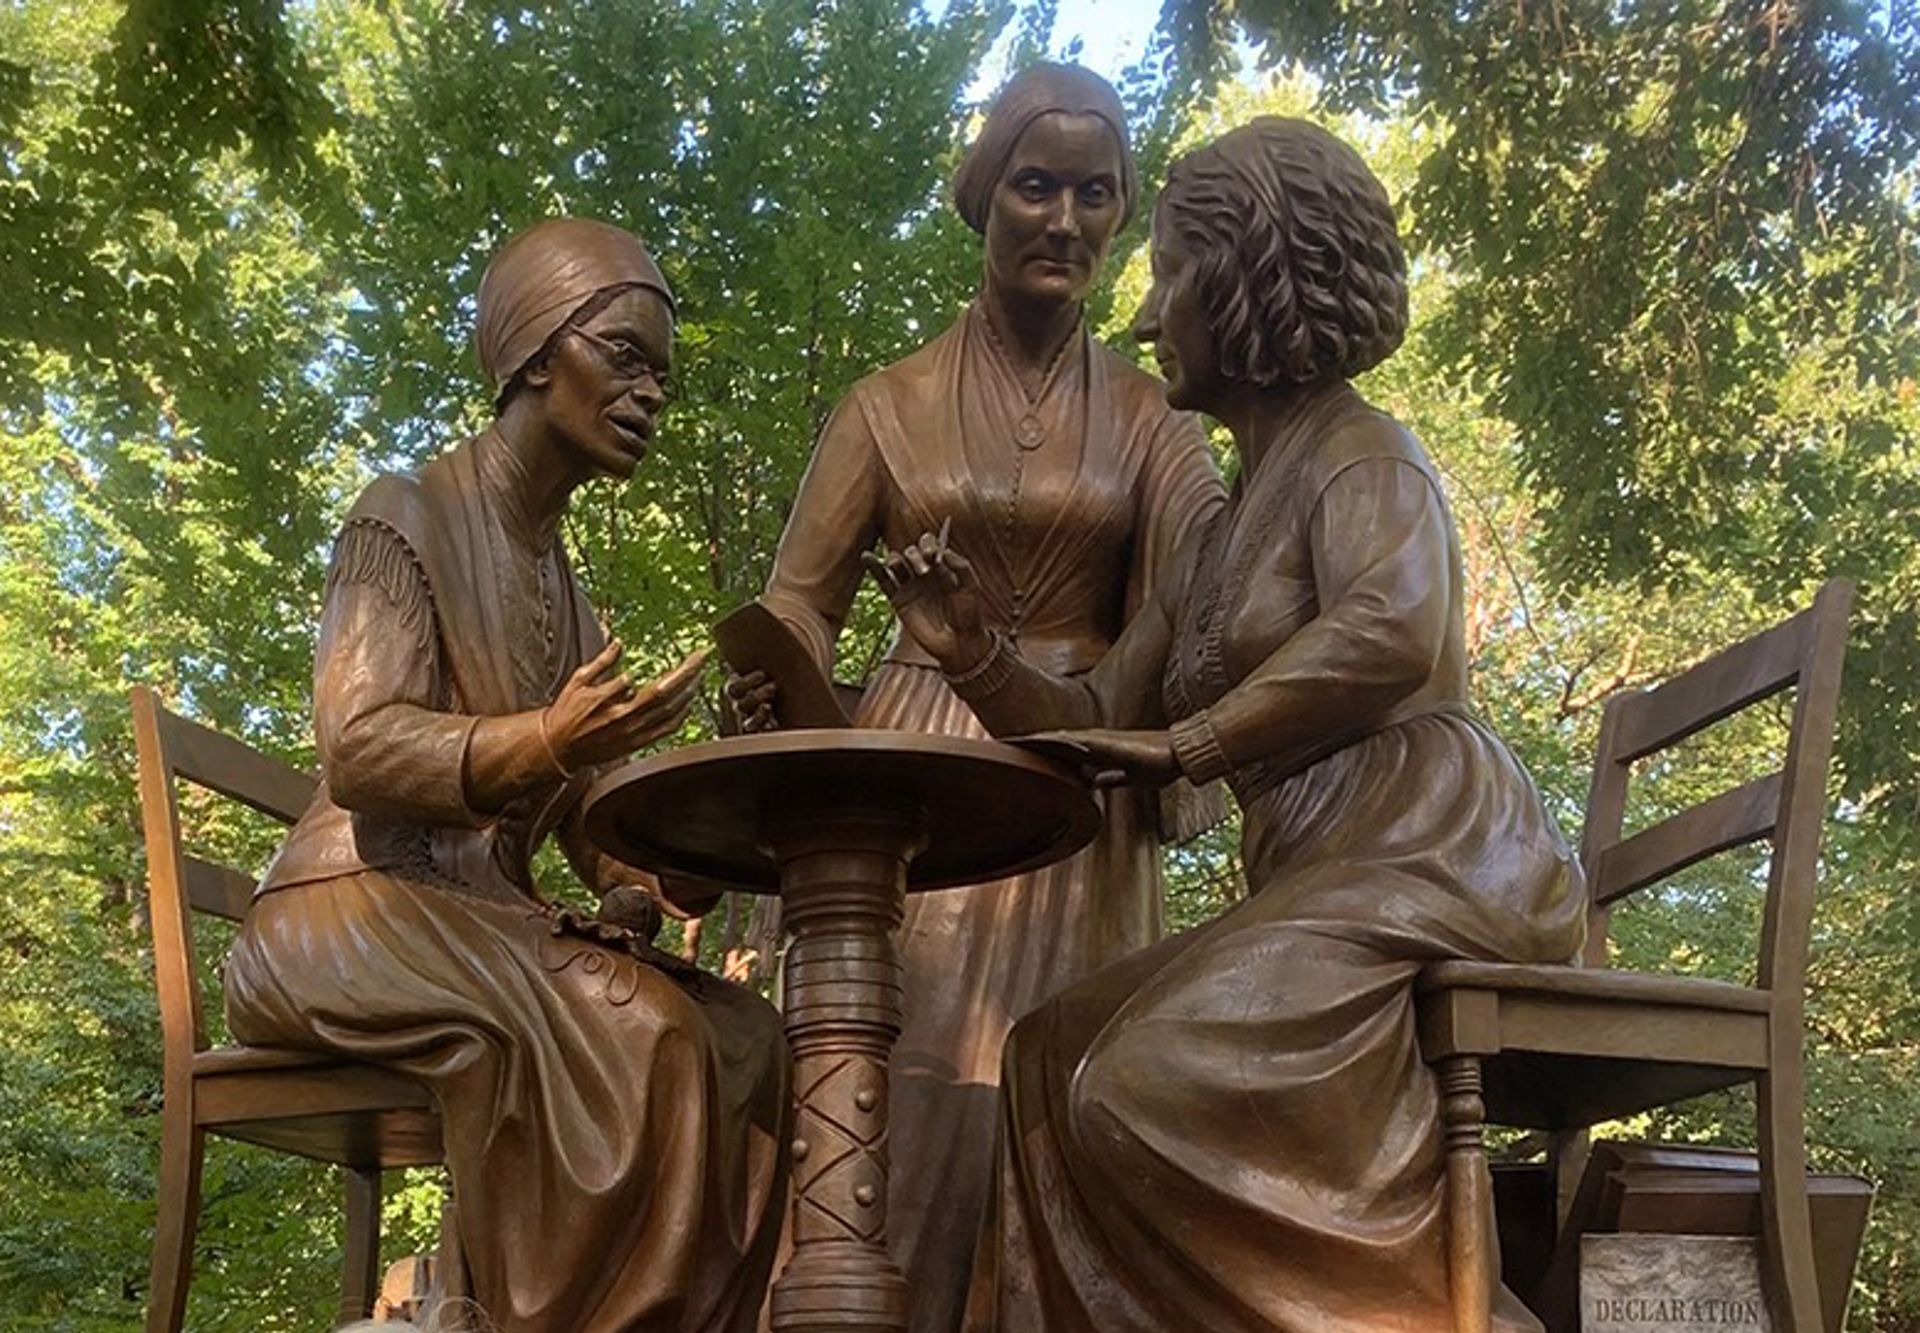 The sculpture depicting Susan B. Anthony, Elizabeth Cady Stanton and Sojourner Truth in Central Park